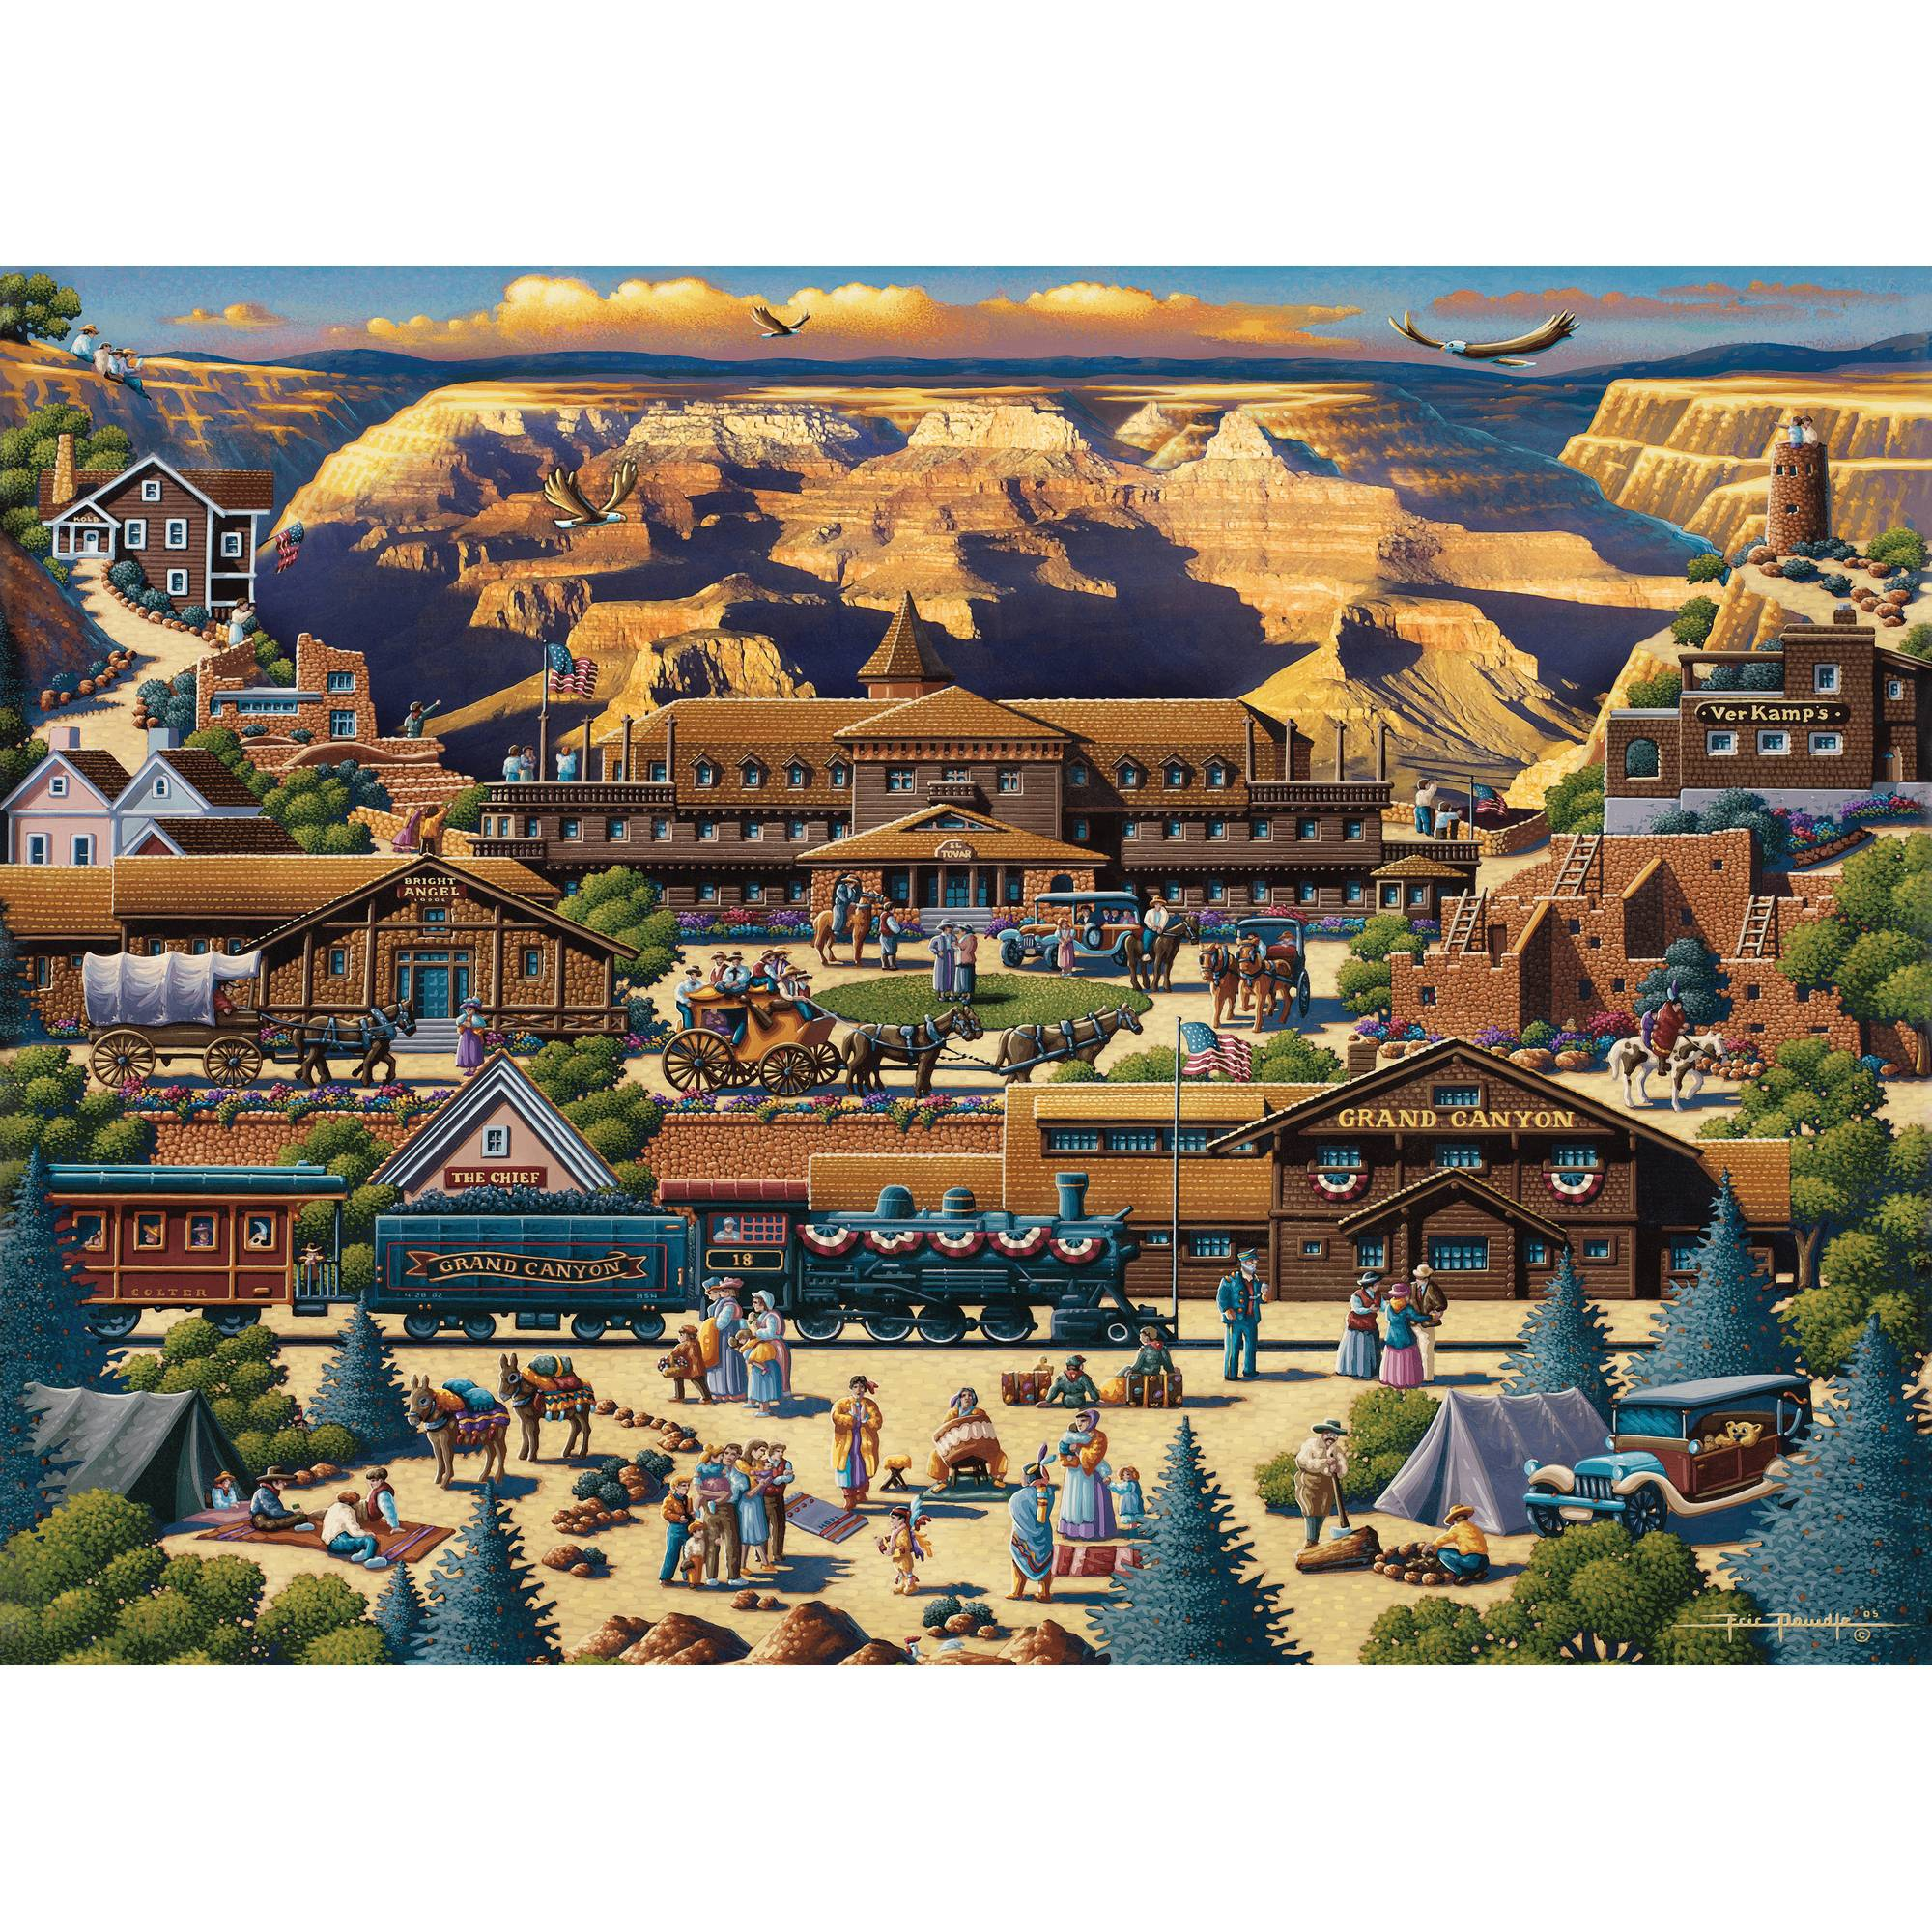 MasterPieces Grand Canyon 1000 Piece Puzzle by MasterPieces